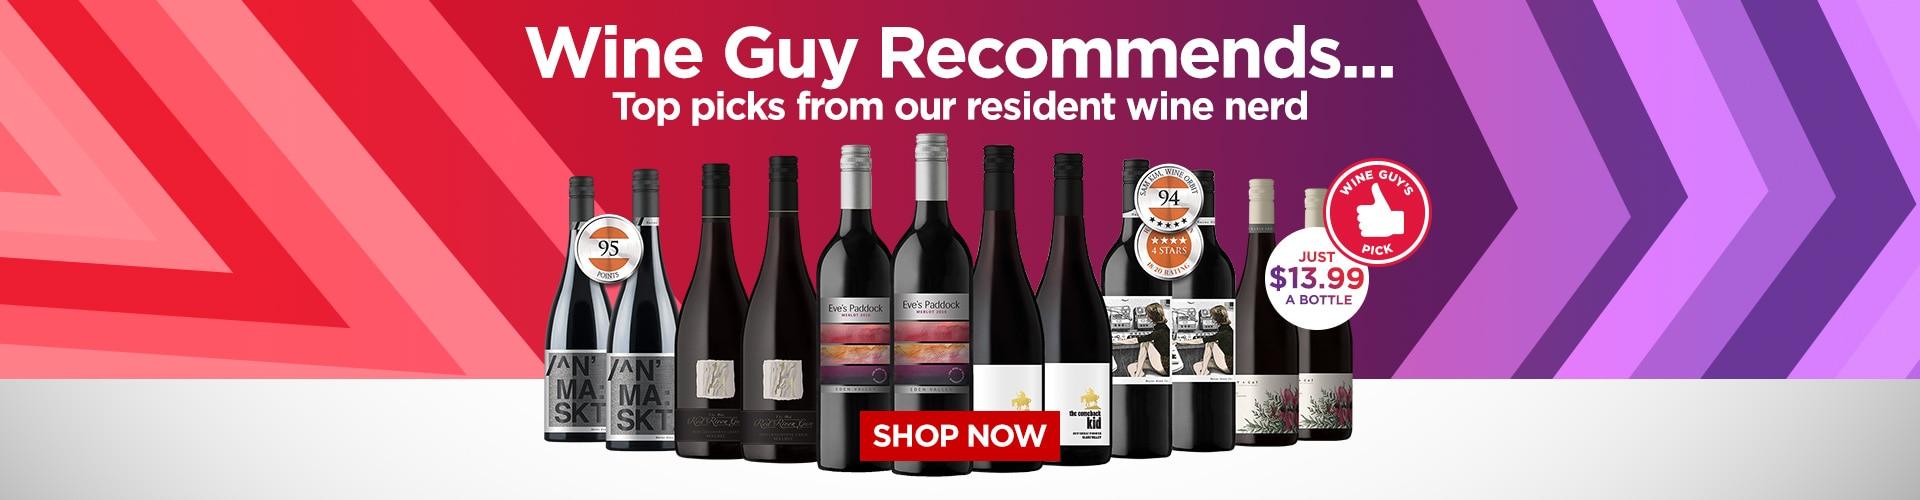 The Wine Guy's Recommendations - only $13.99 a bottle! SHOP NOW